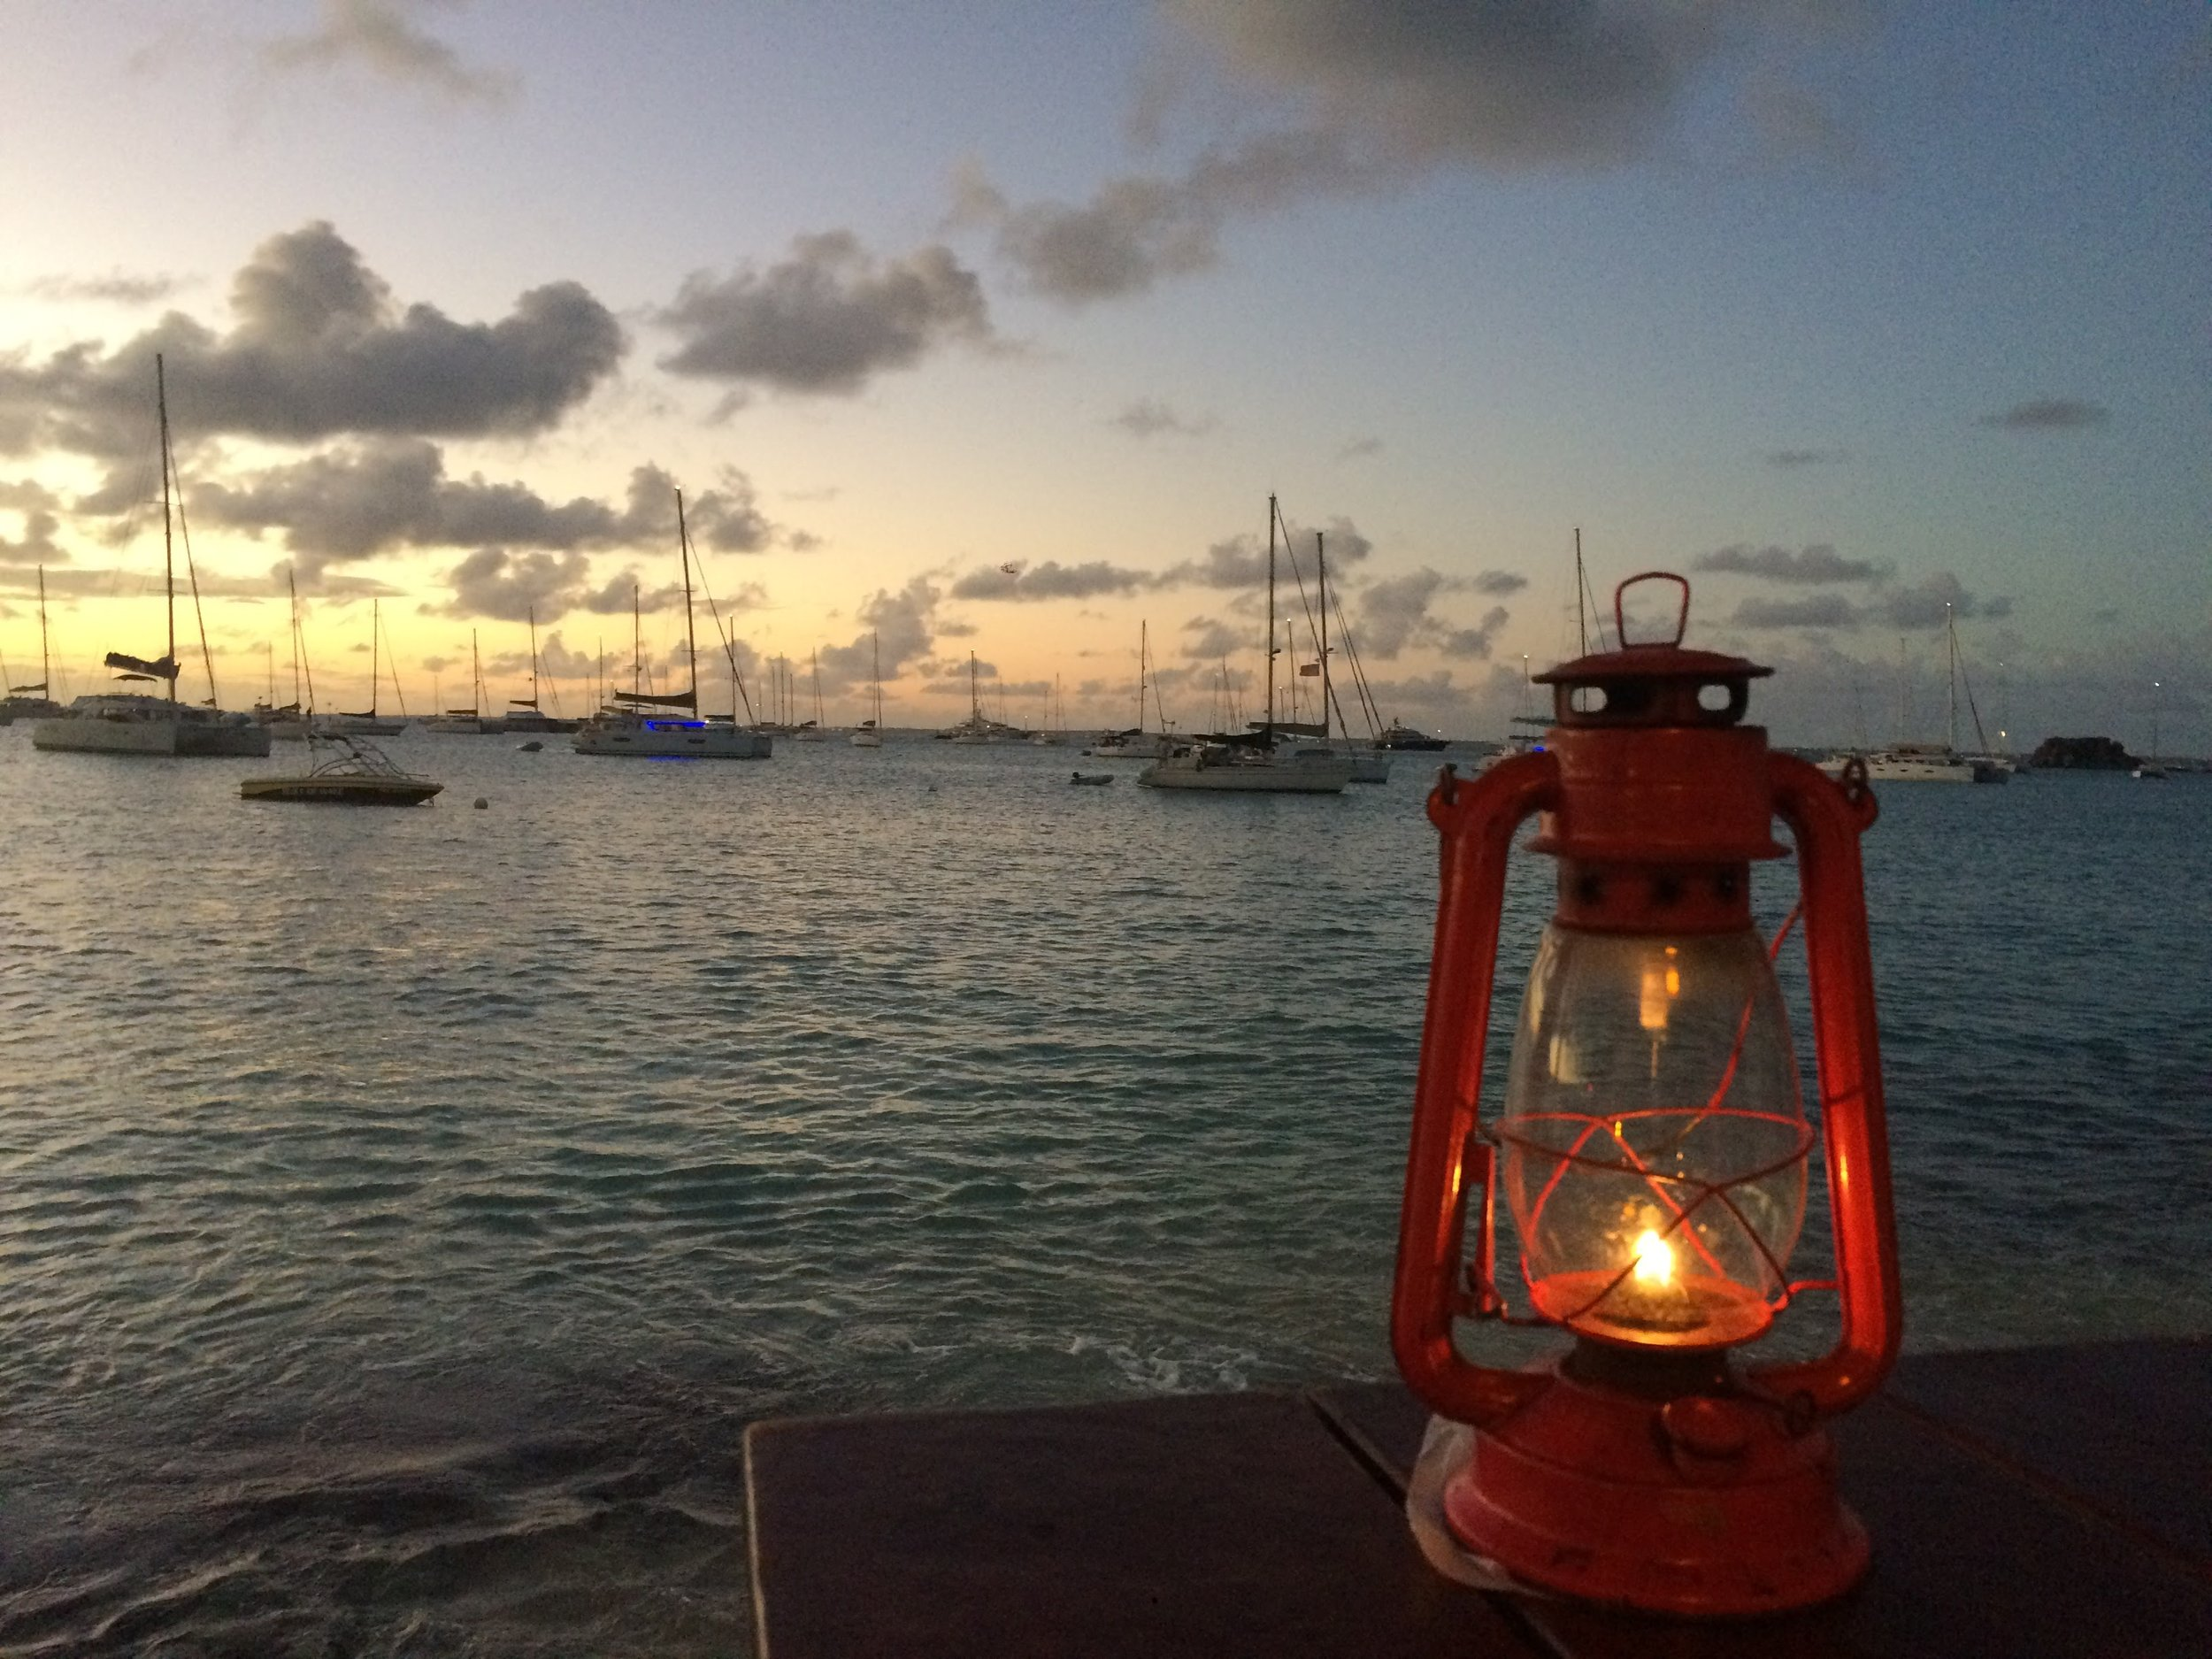 St. Martin - 55 by 55 Travel